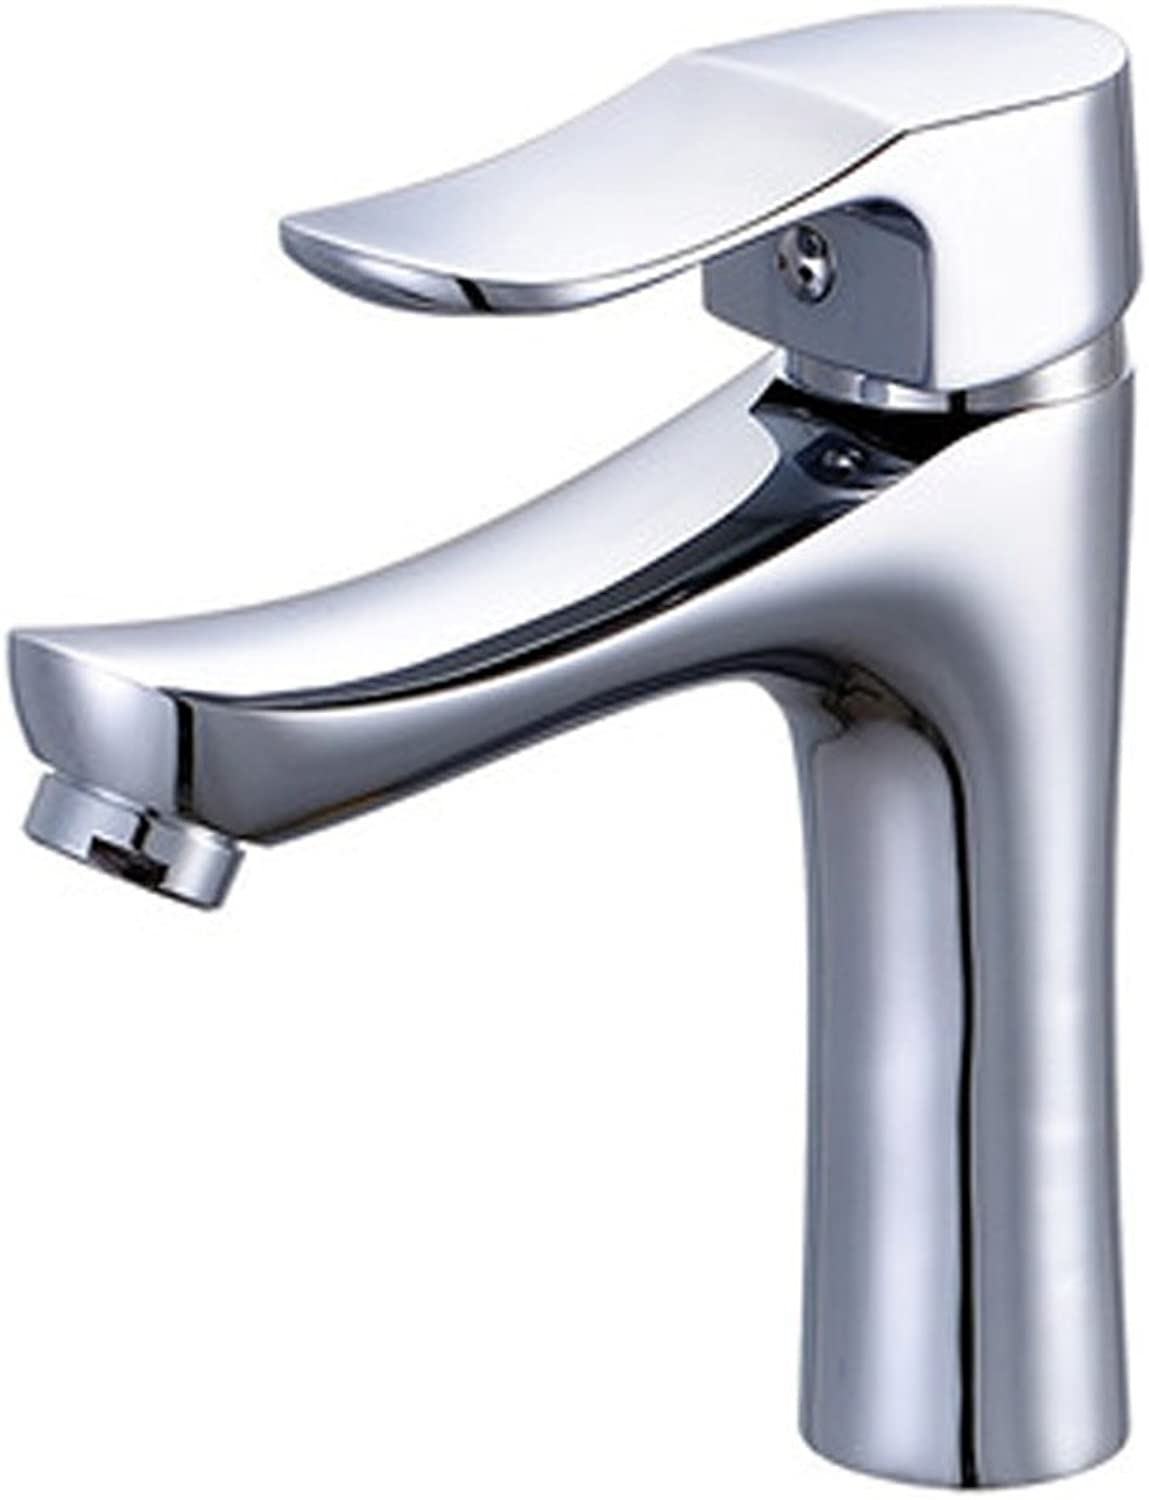 ZHANGY Faucet Faucets Brushed nickel ModernSingle Hole BathroomCopper Faucet with Single Handle Bathroom hardware